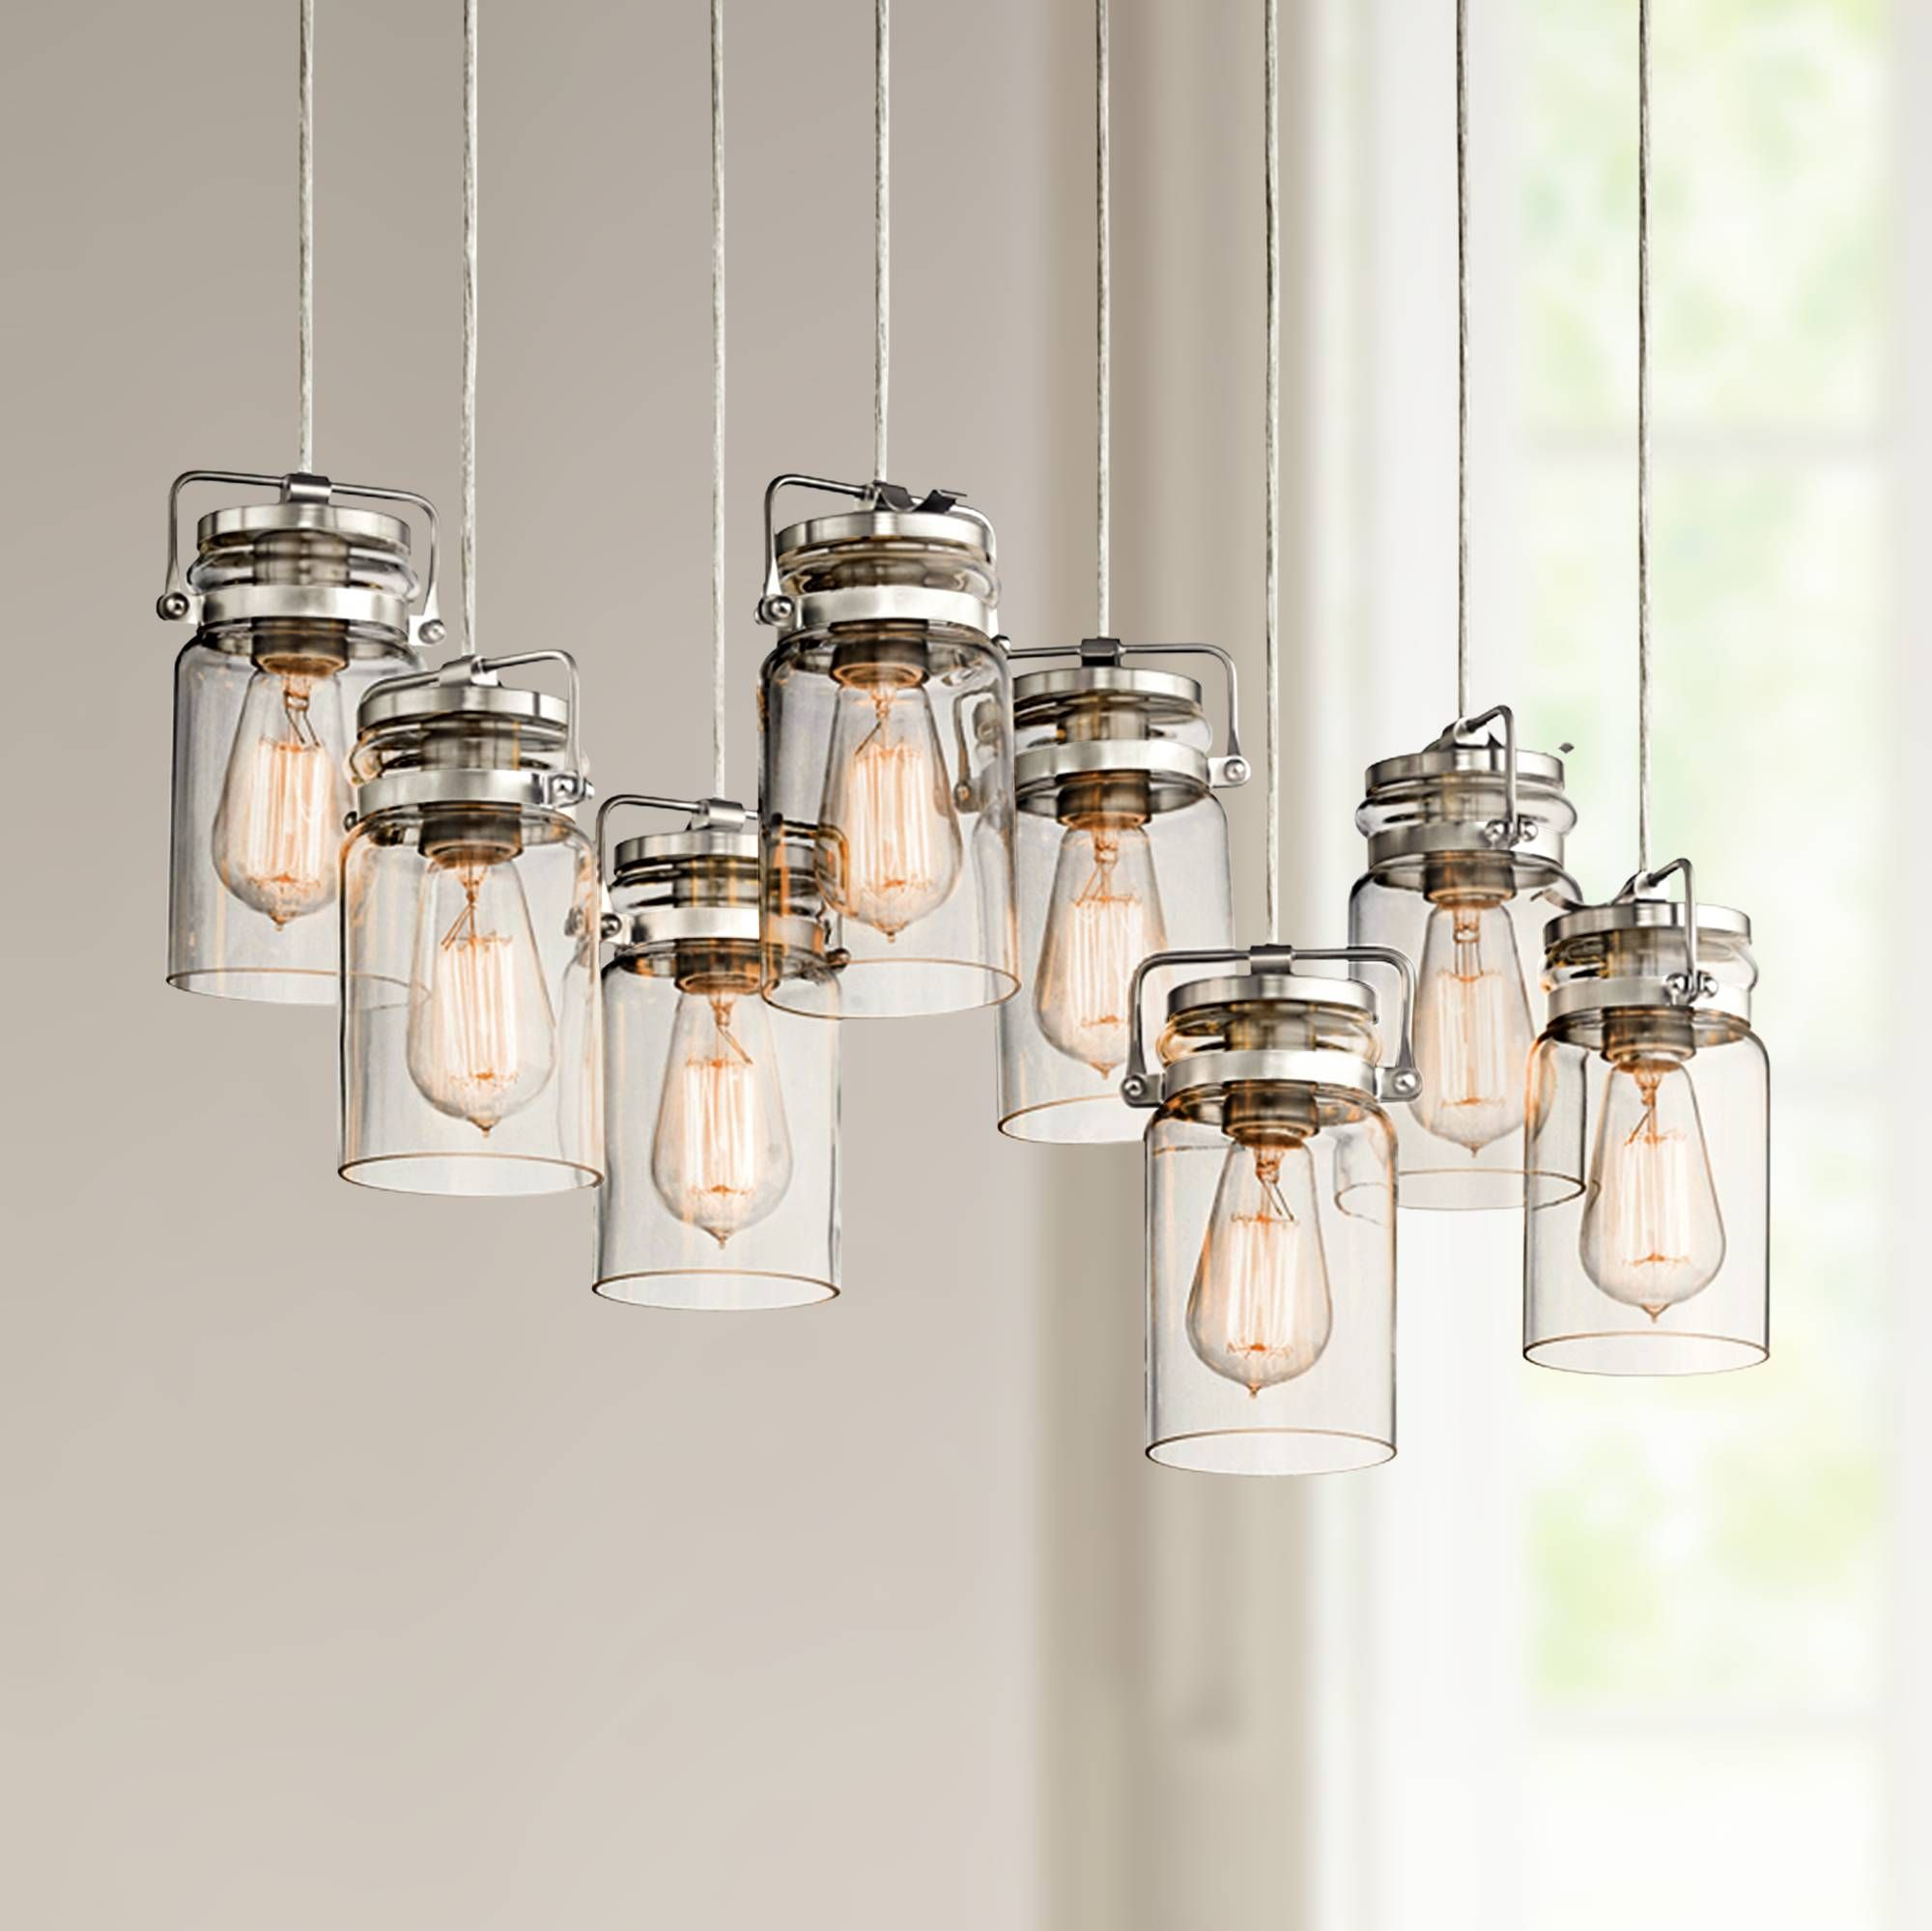 Eight glowing lights suspend from this spectacular